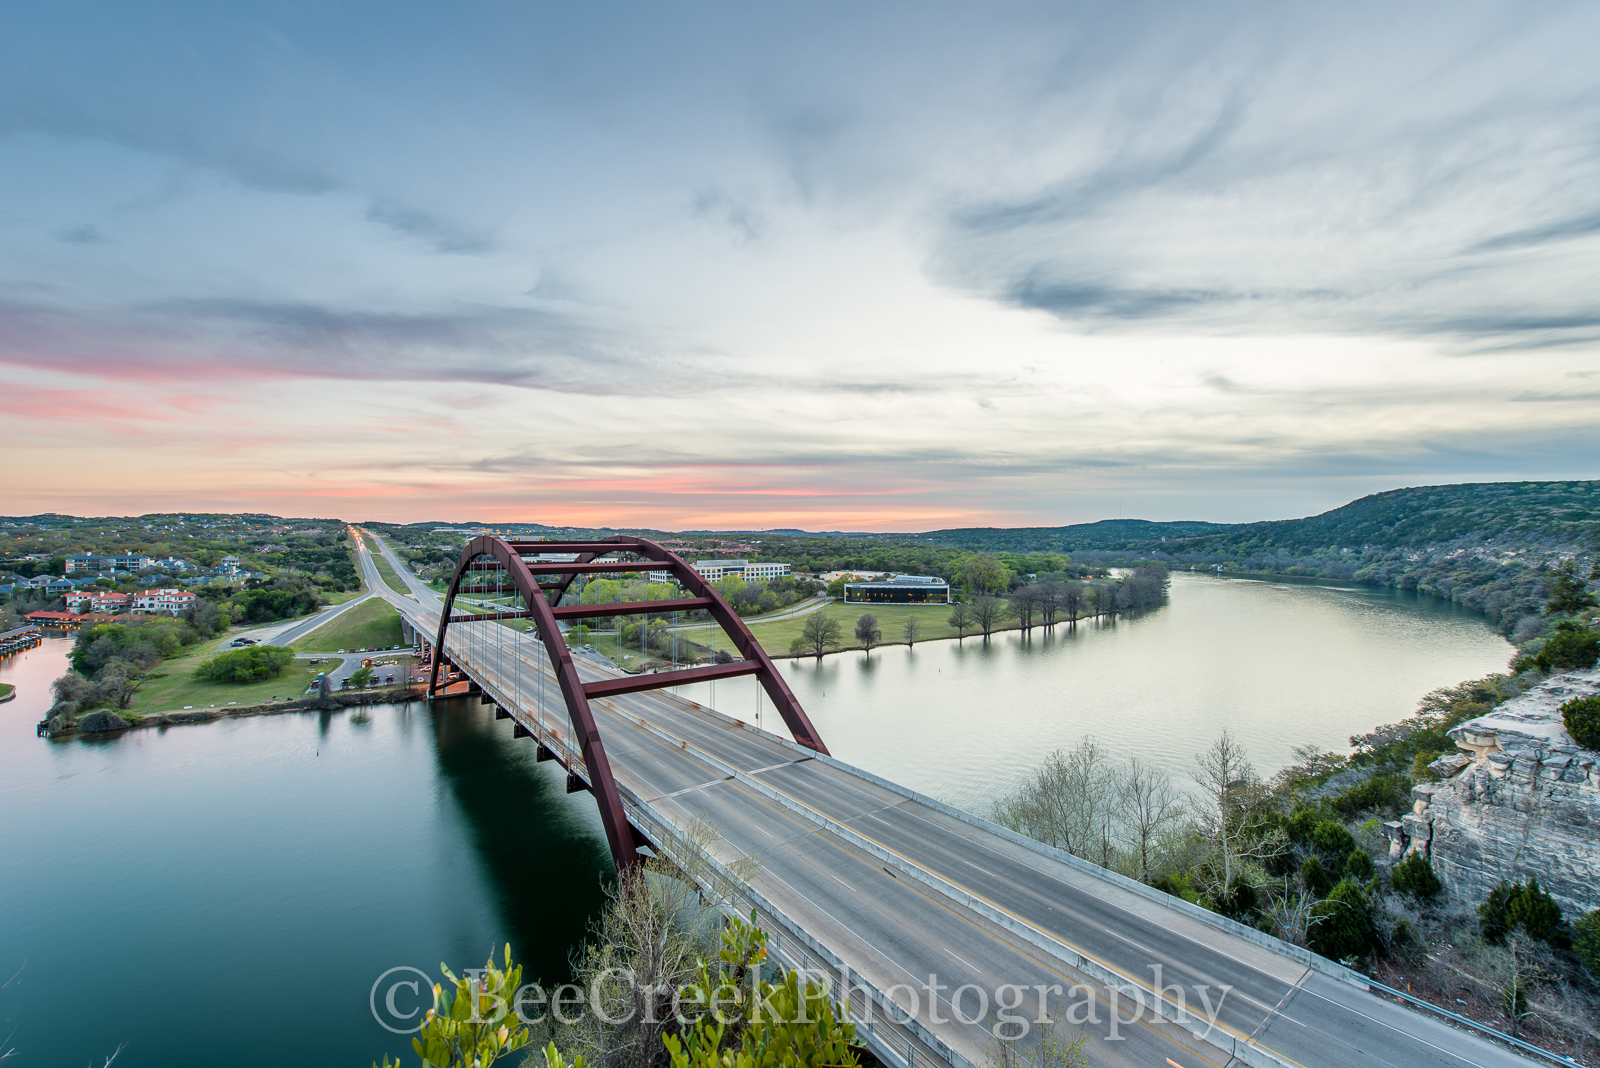 360 Bridge sunset, 360 bridge, Austin, Austin 360 Bridge, Austin skyline pictures, Central Texas, Hill Country, Lake Austin, Penny Backer Bridge photos, Penny Backer Bridge pictures, Pennybacker bridg, photo